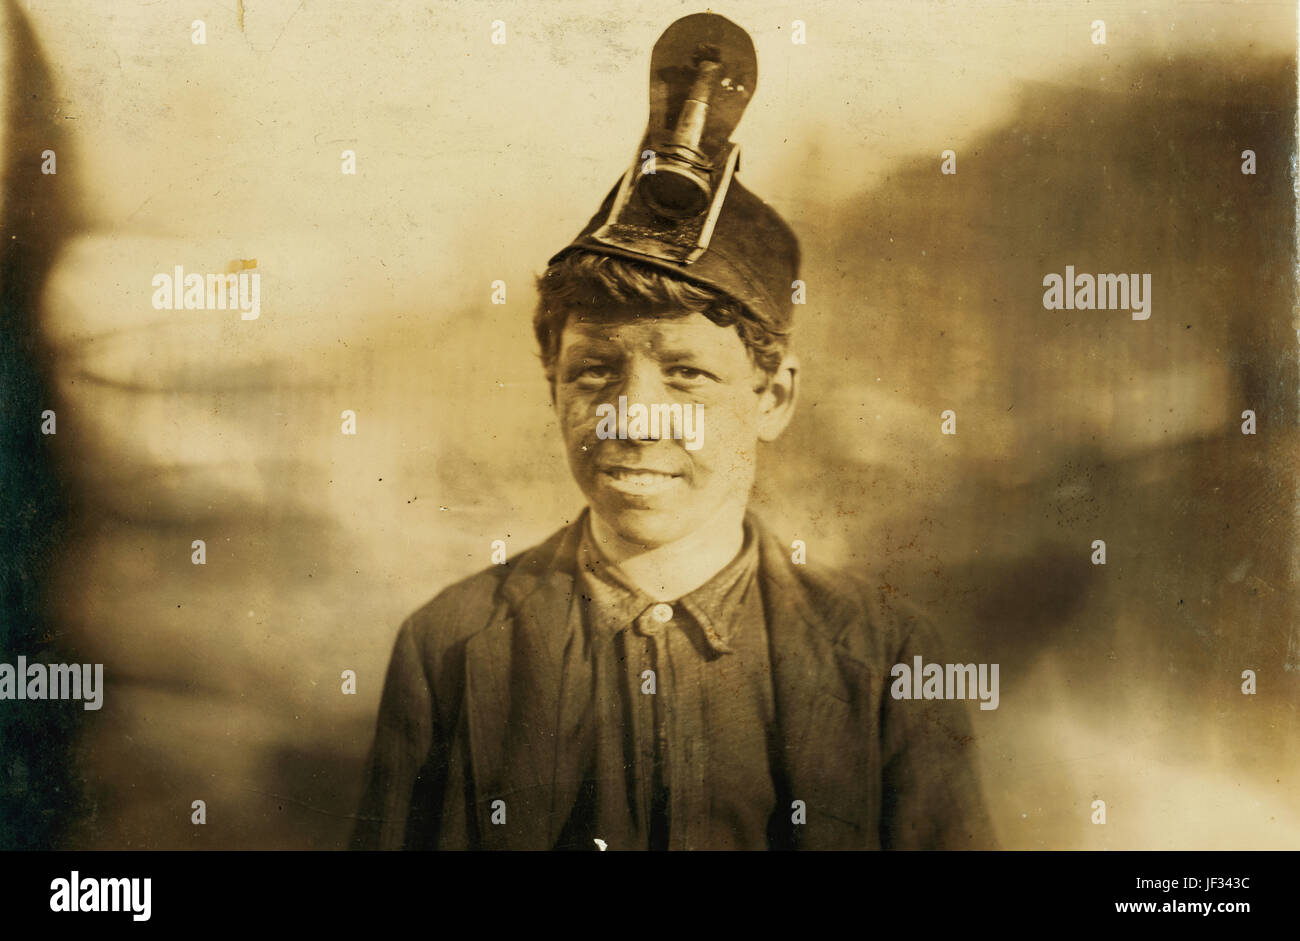 Title: National Child Labor Committee. No. 191. Frank, a Miner Boy, going home. About 14 years old: has worked in - Stock Image